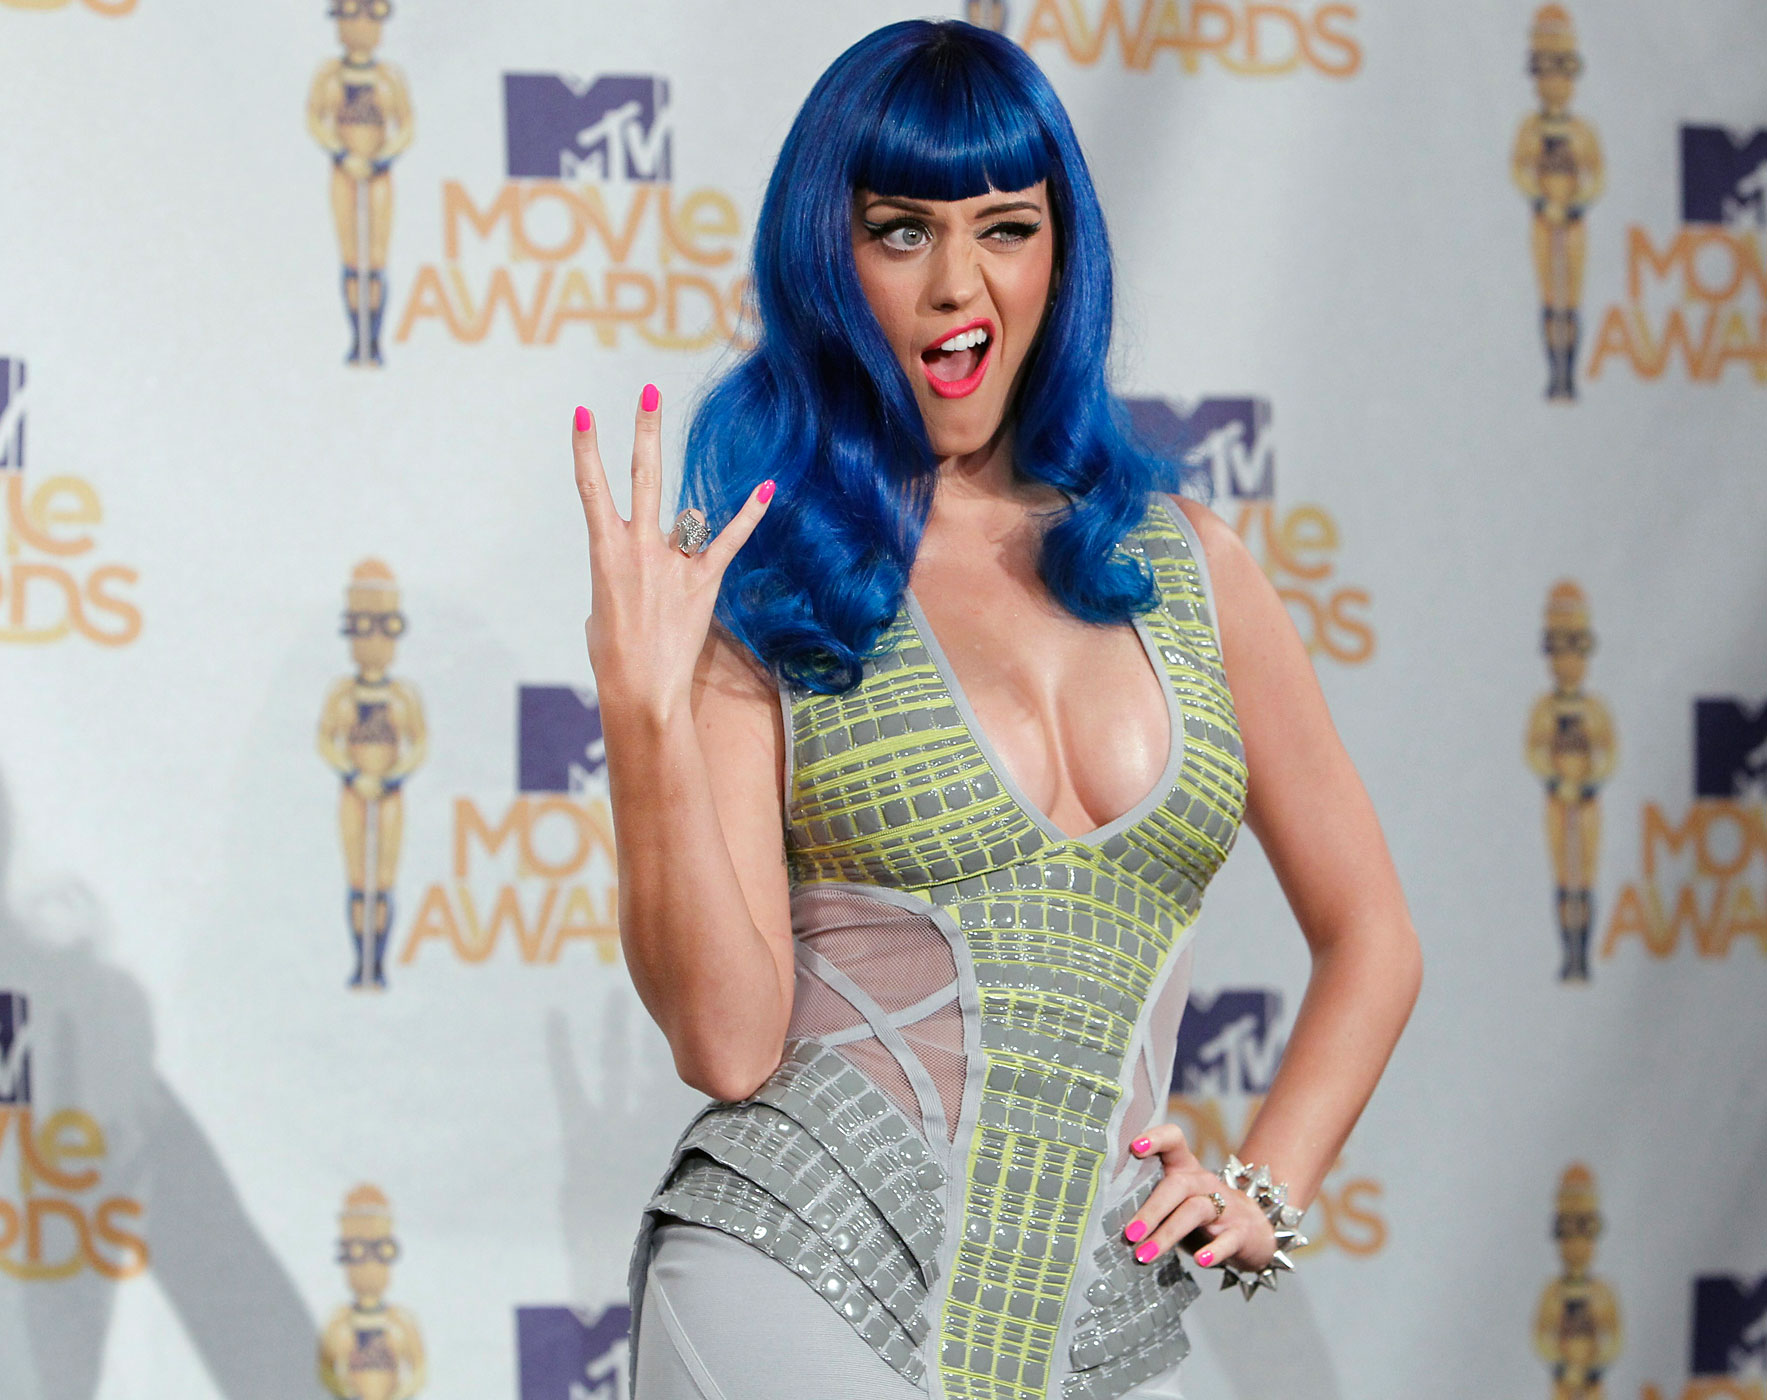 Katy Perry poses backstage after performing at the 2010 MTV Movie Awards in Los Angeles June 6, 2010.